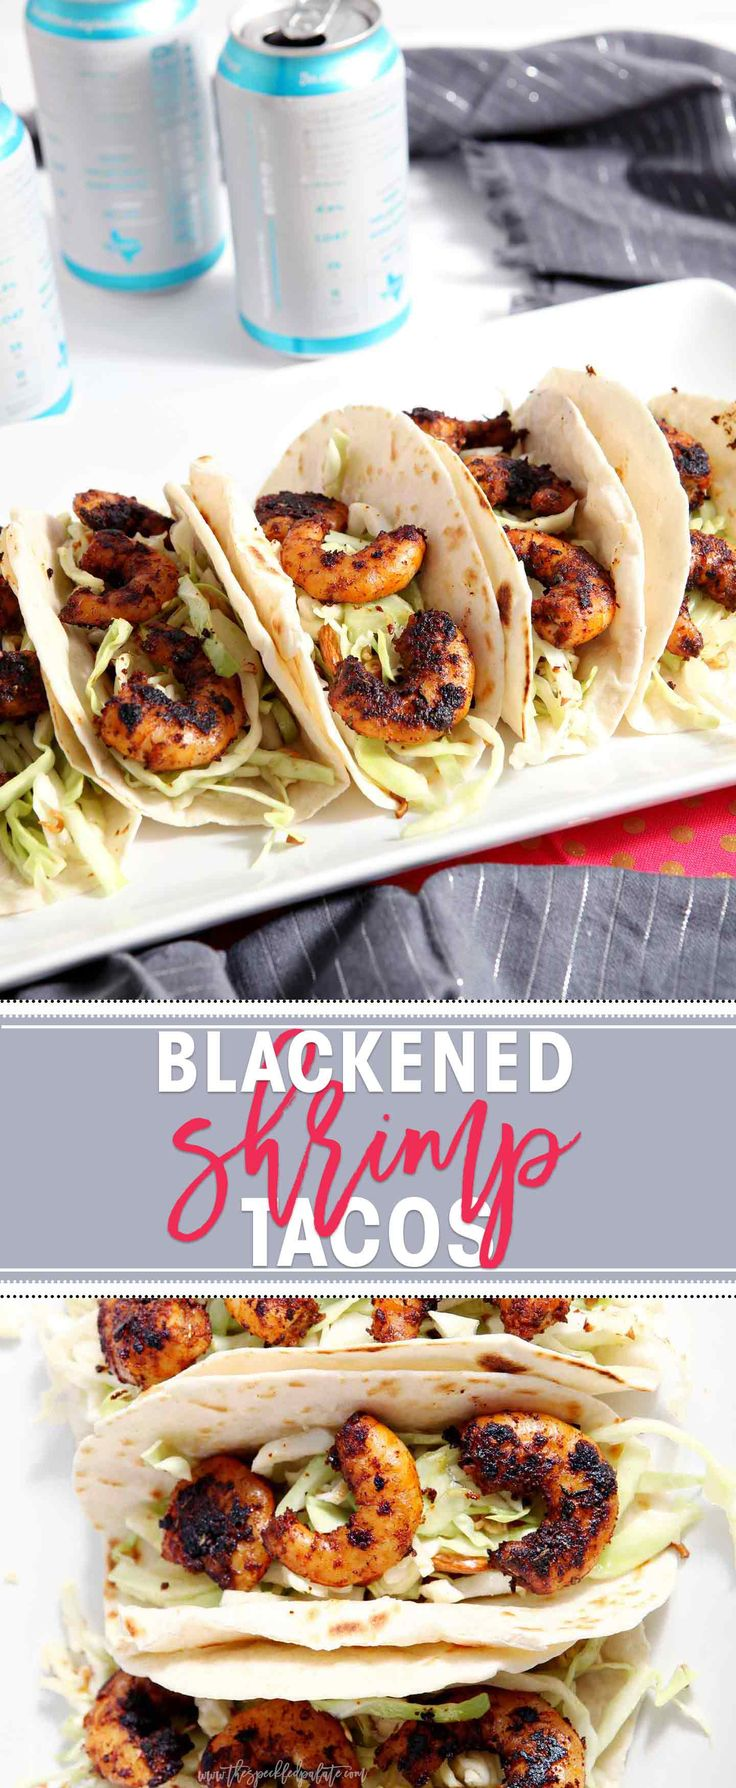 Blackened Shrimp Tacos with a crunchy coleslaw are the BEST entree to make at your football tailgate! These portable entrees are perfect for feeding a crowd!